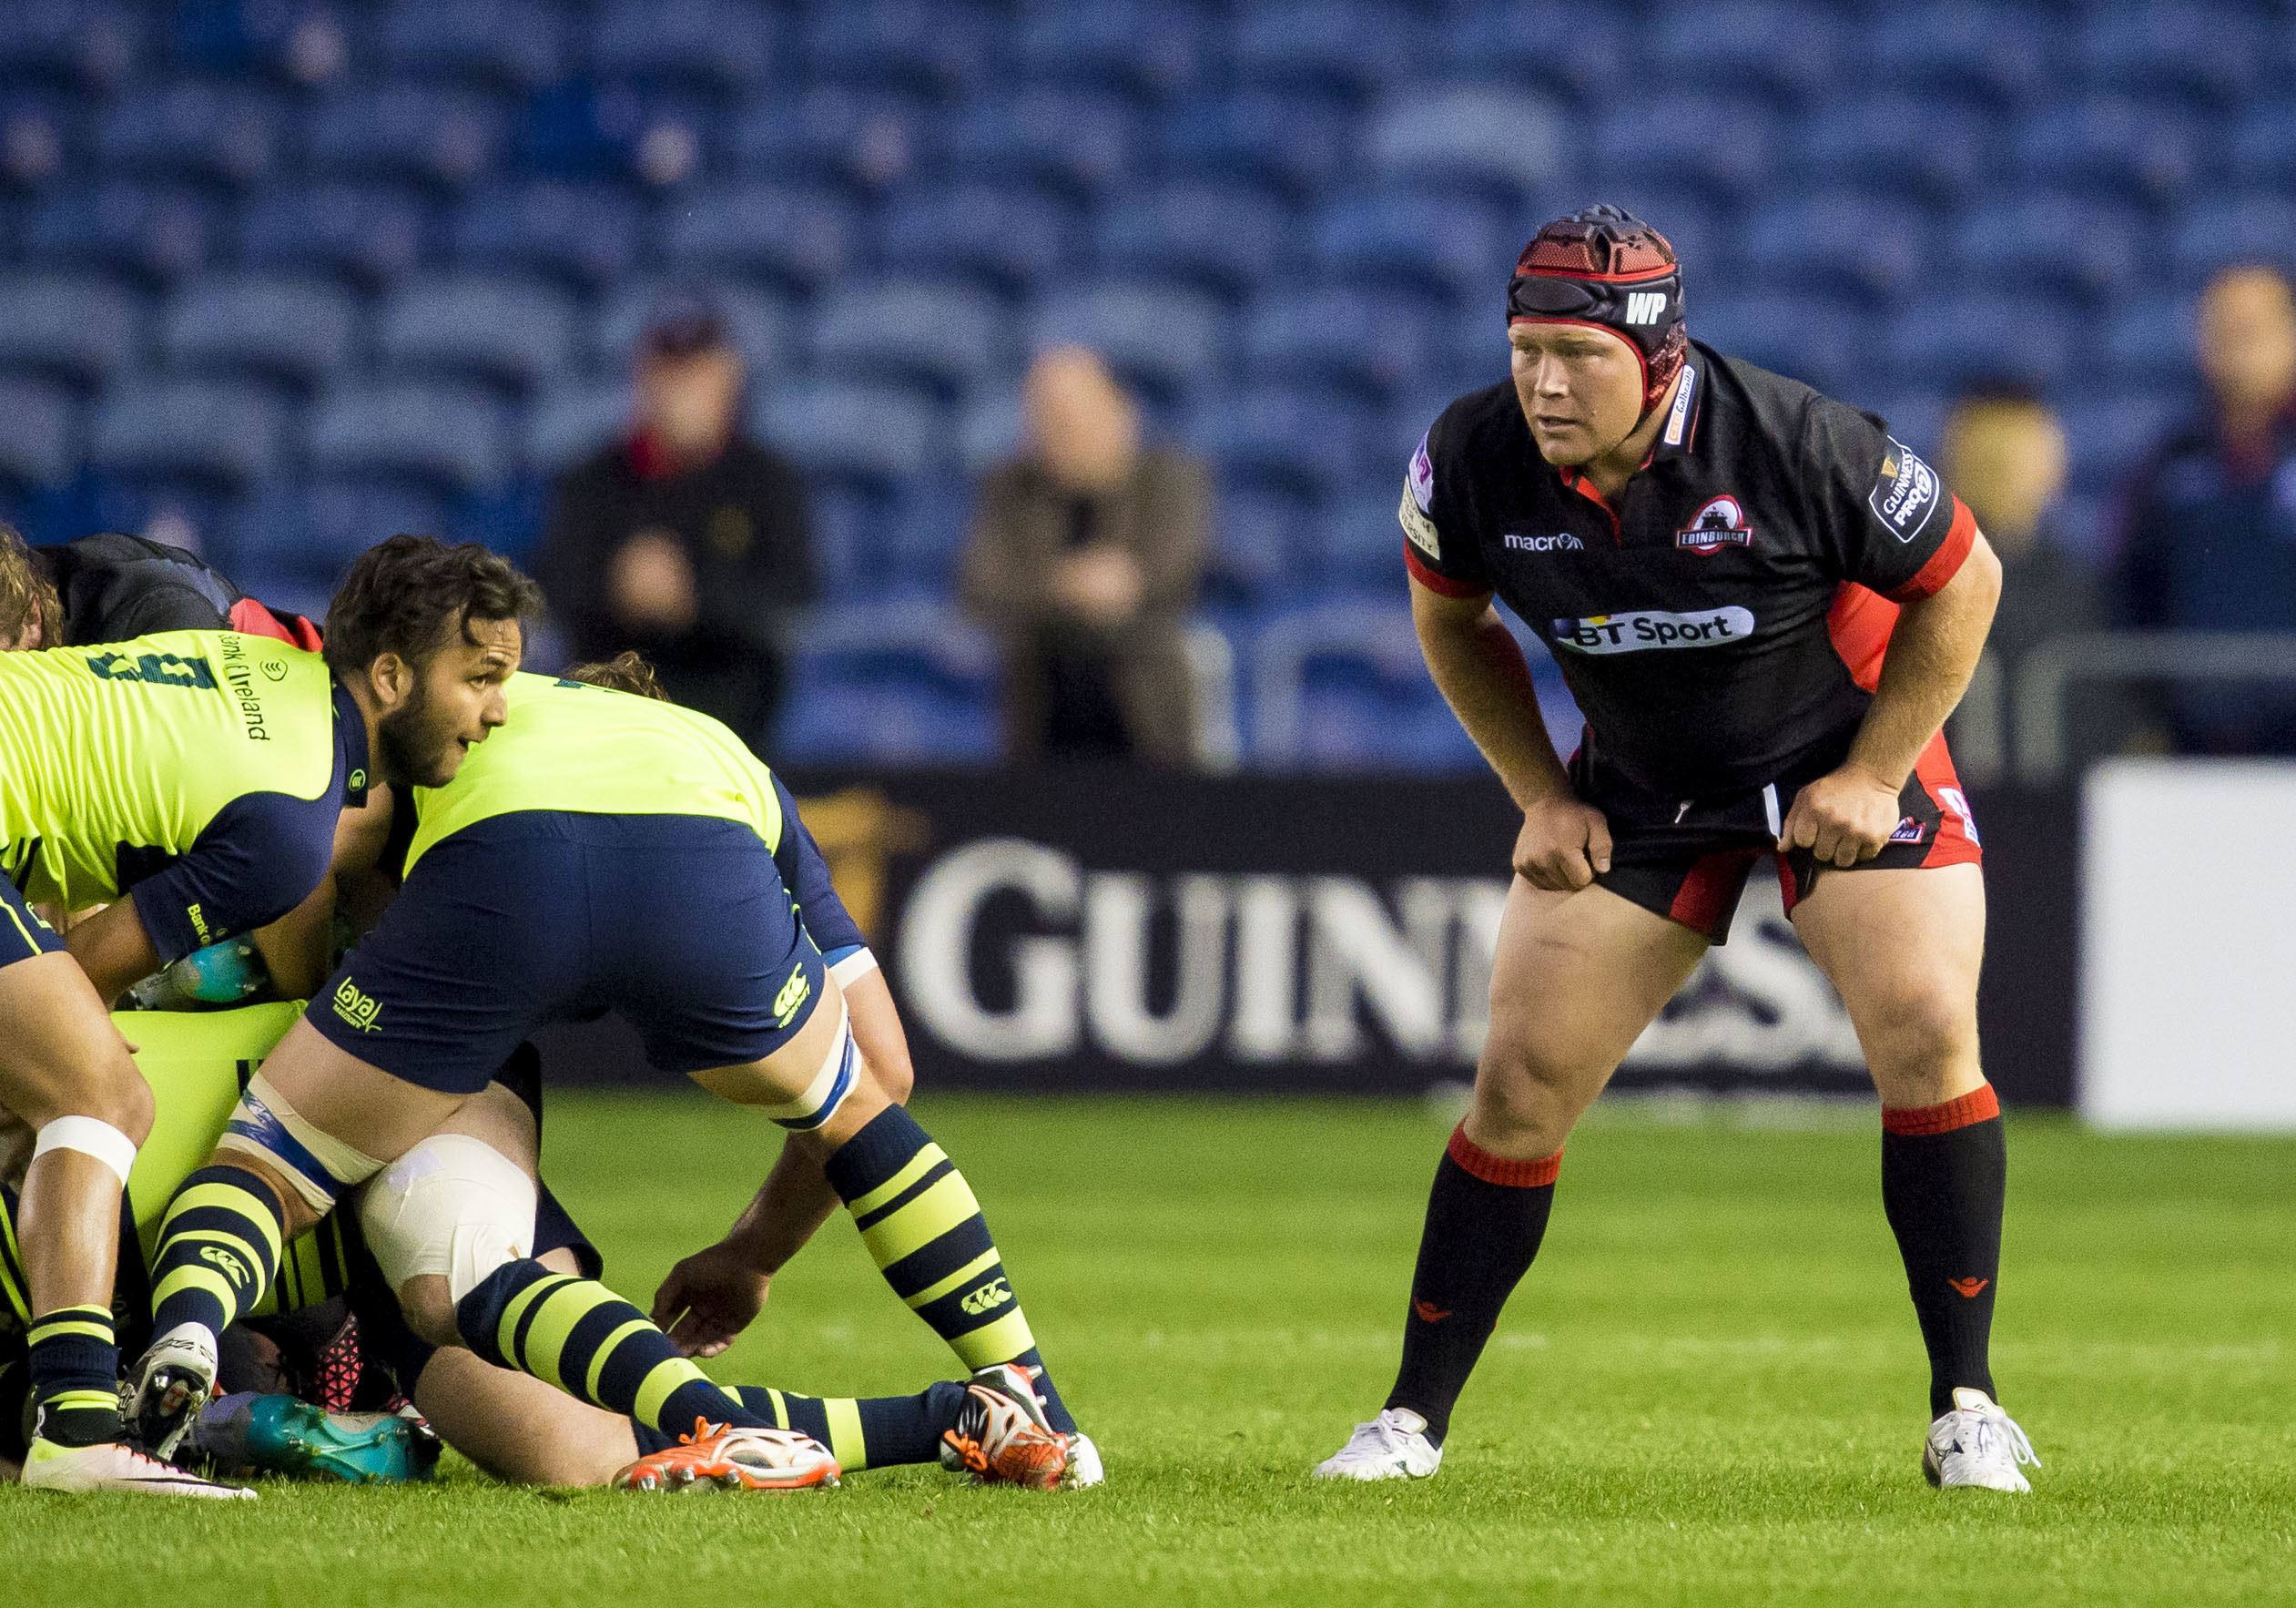 WP Nel played 100 times for Edinburgh while completing his three-year residency to play for Scotland.